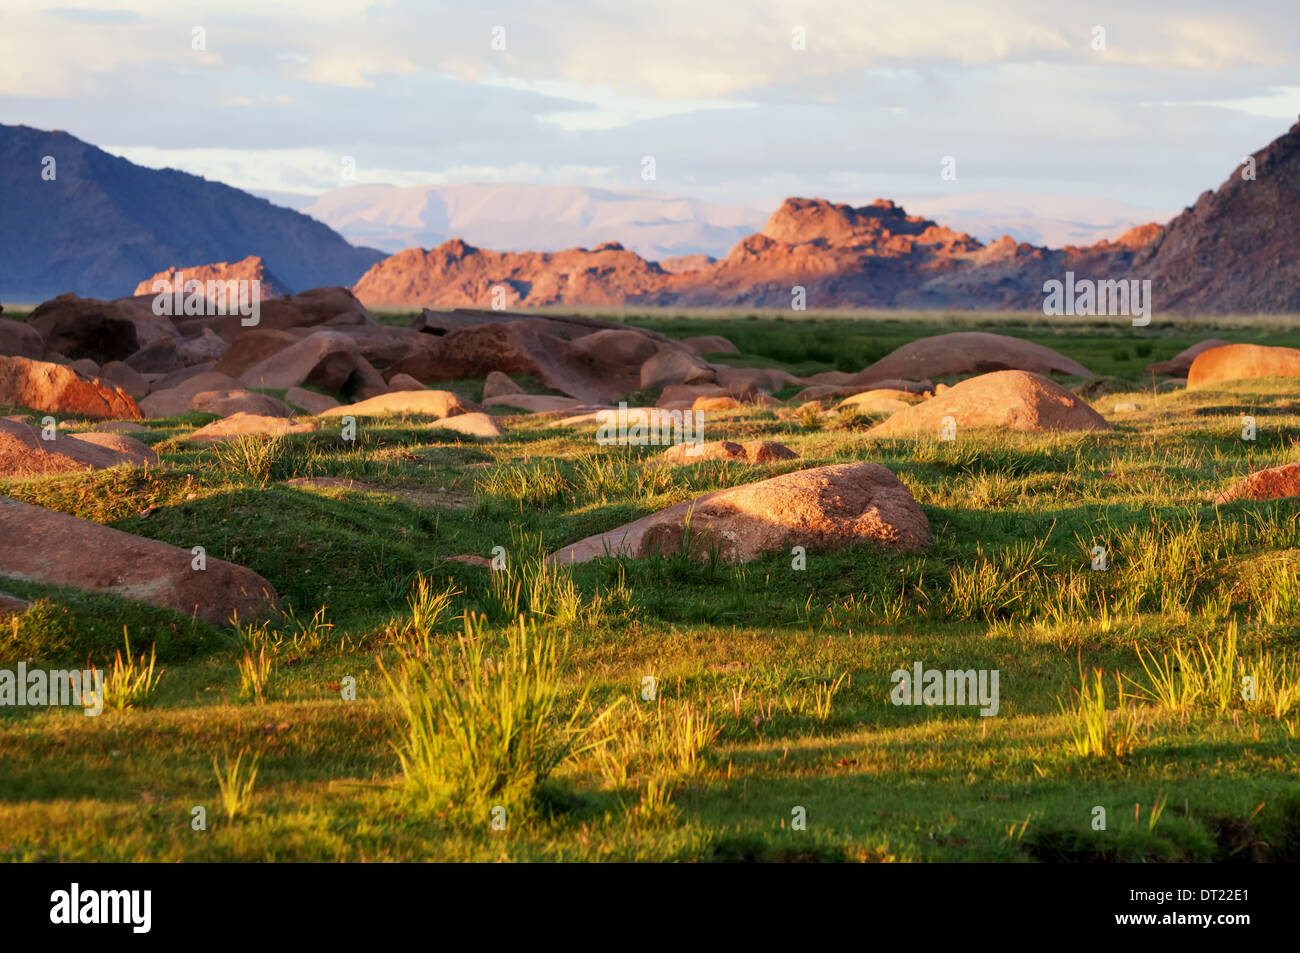 Morning in the valley of Khovd river, Western Mongolia - Stock Image